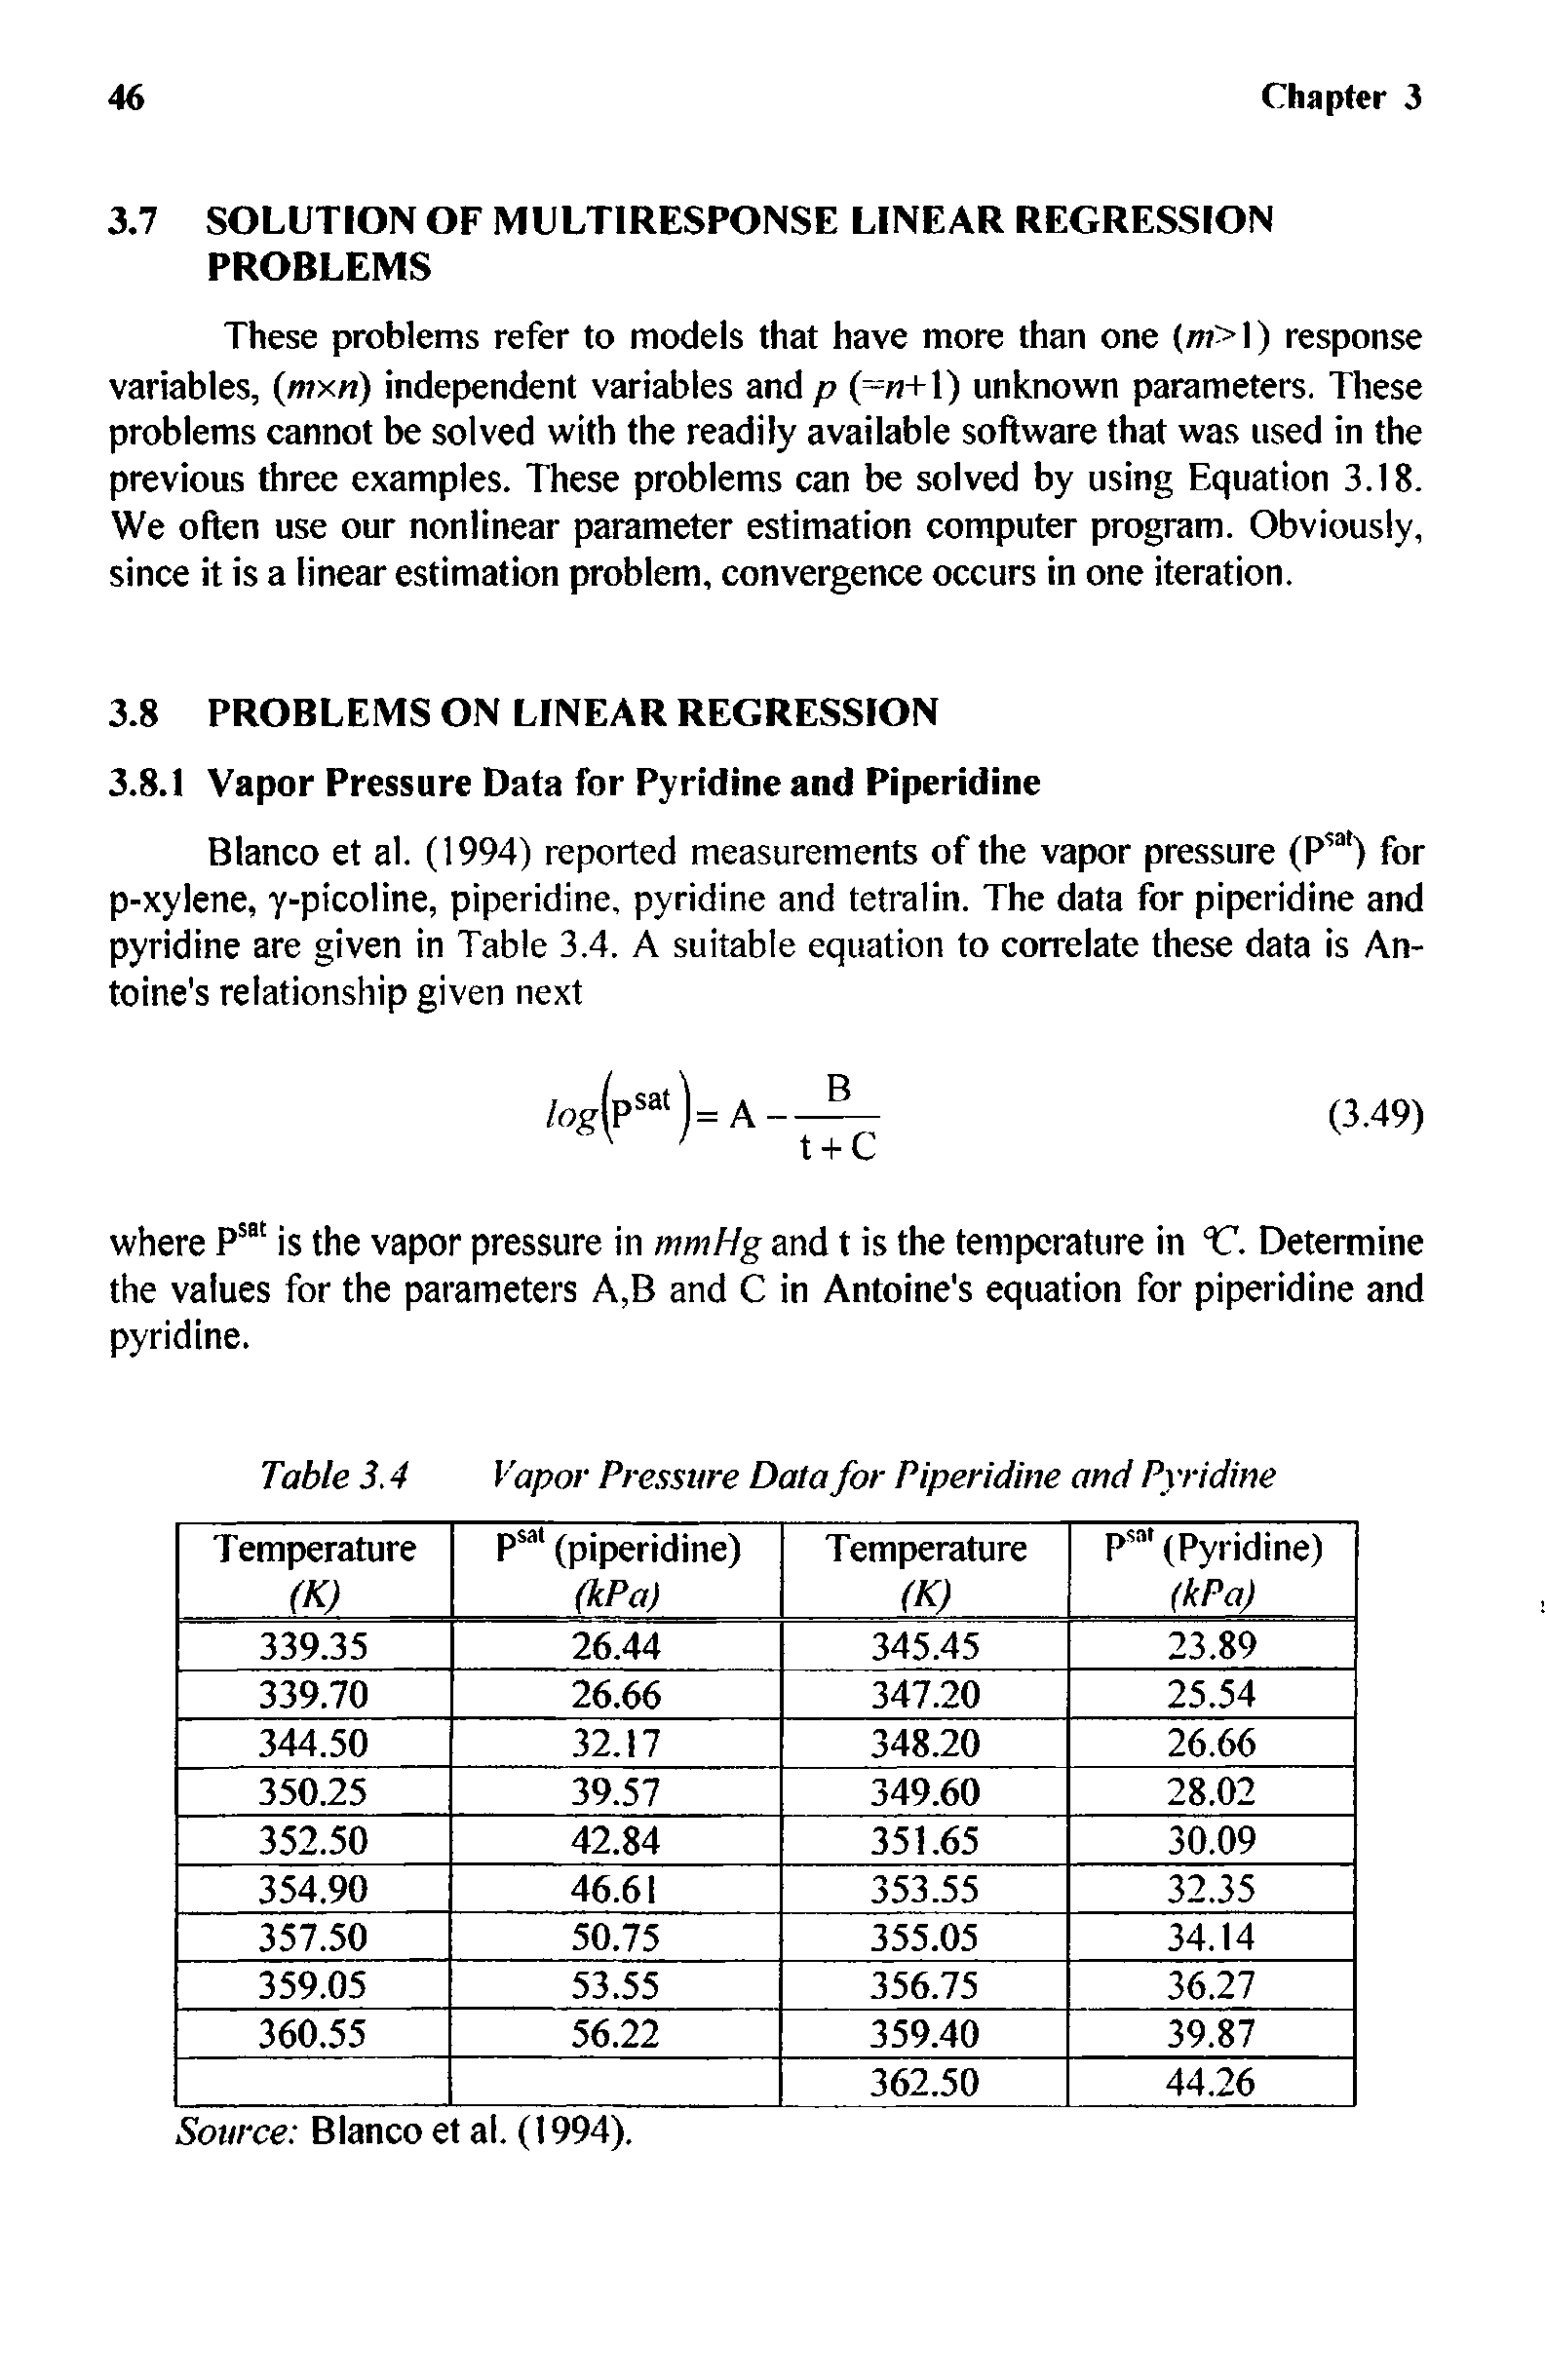 Table 3.4 Vapor Pressure Data for Piperidine and Pyridine